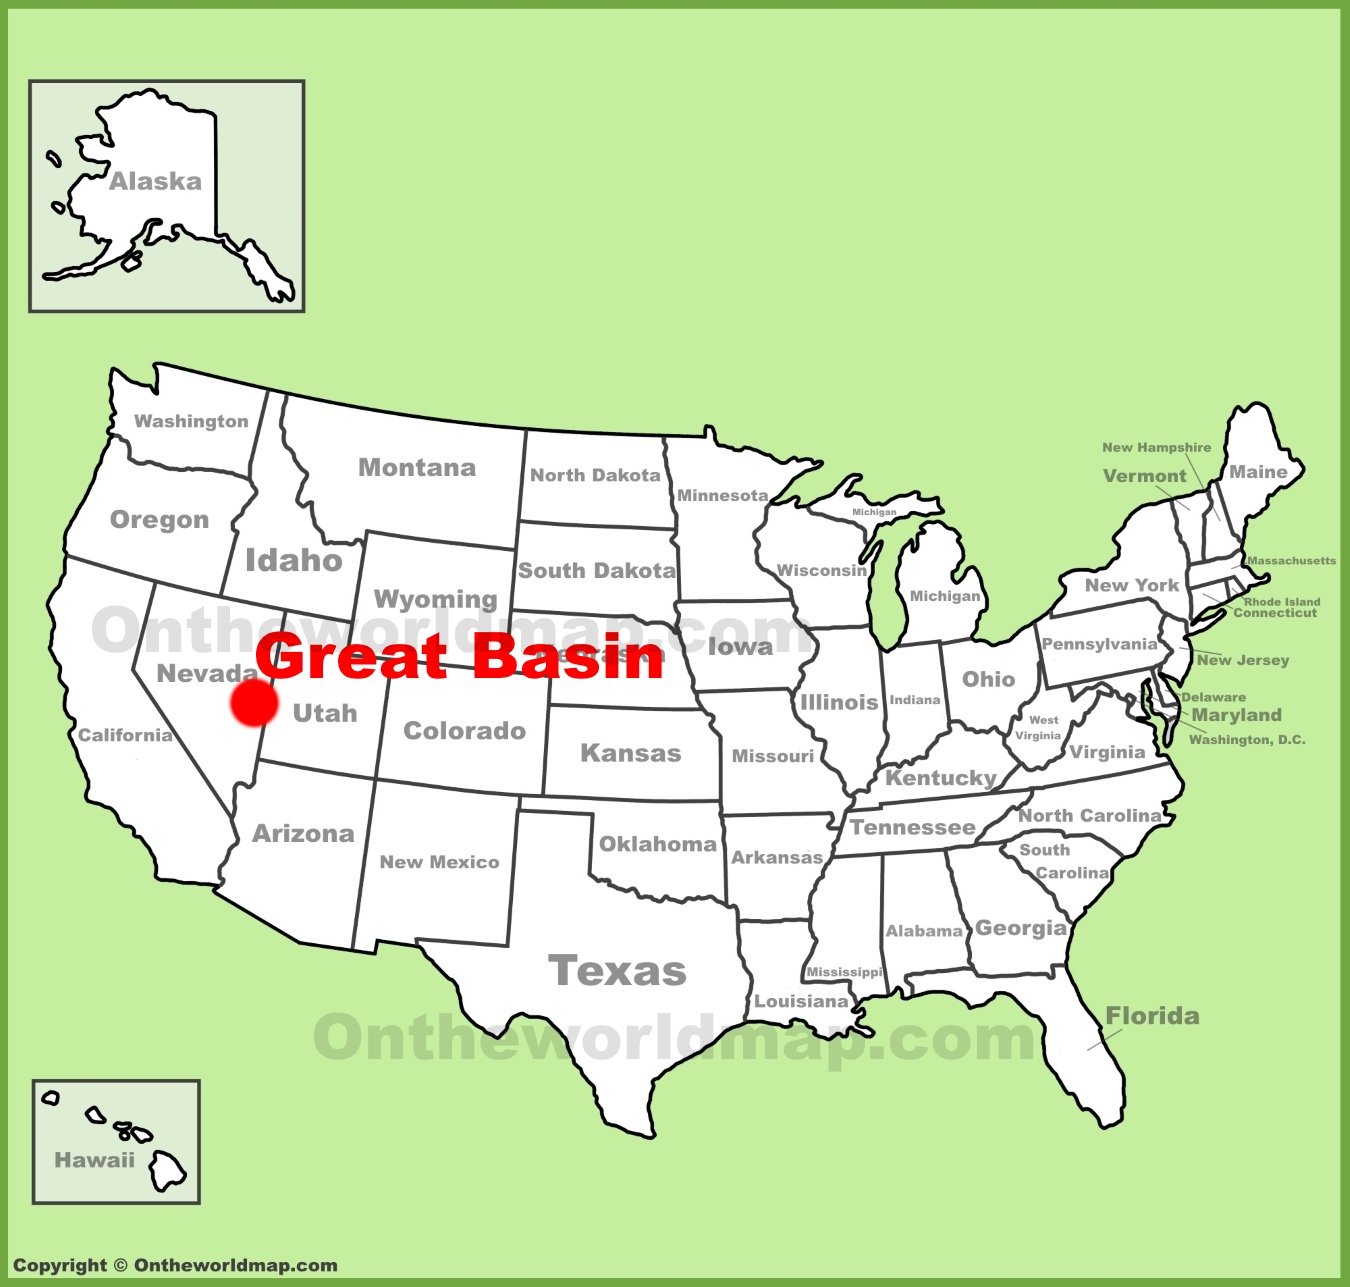 Great Basin location on the US Map